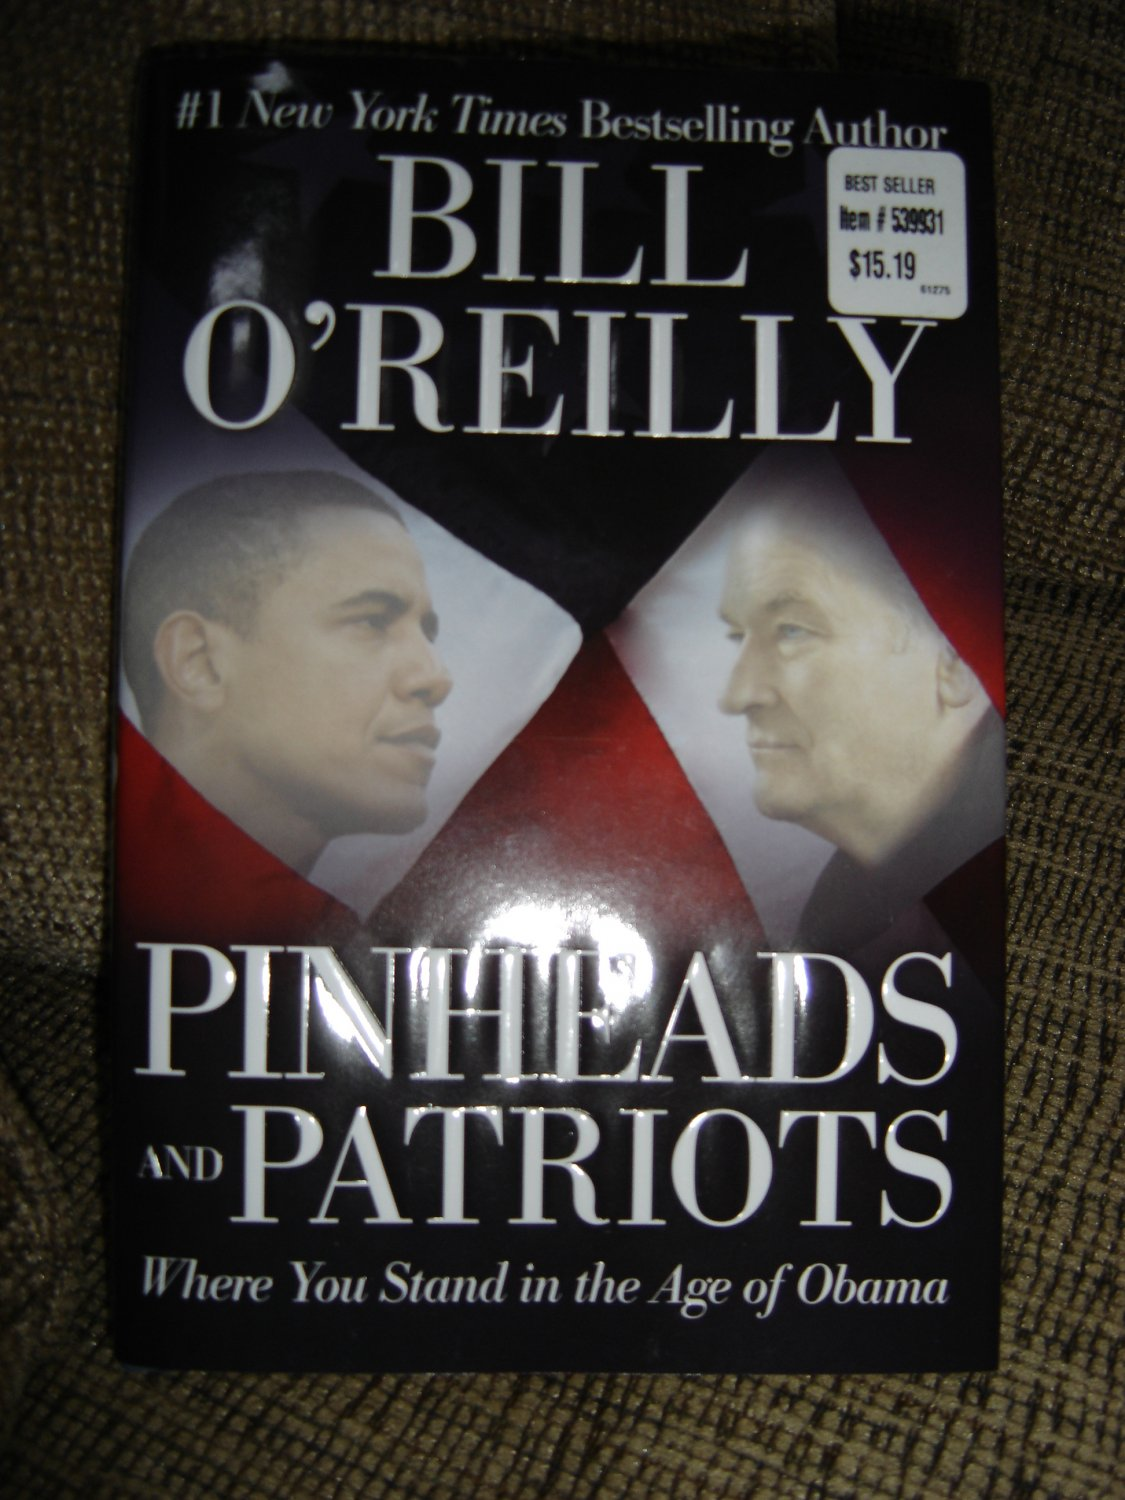 Pinheads and Patriots: Where You Stand in the Age of Obama hardcover book by Bill O'Reilly!